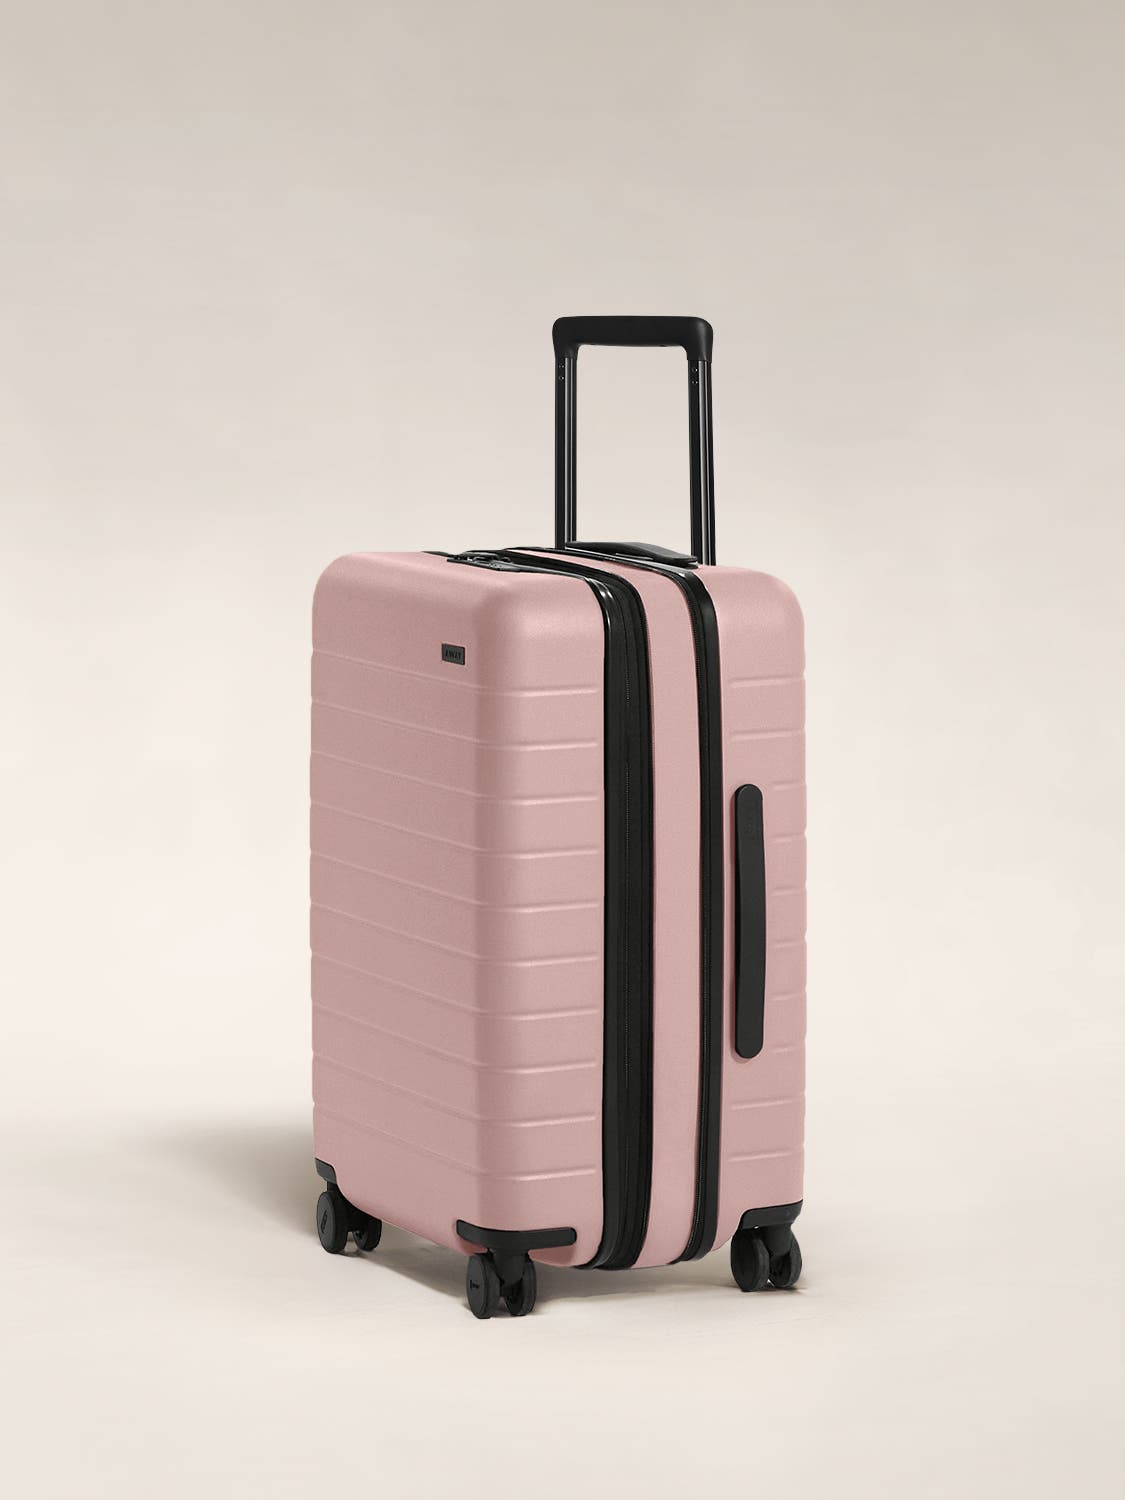 The Bigger Carry-On Flex in Petal shown at an angle with raised telescoping handle.